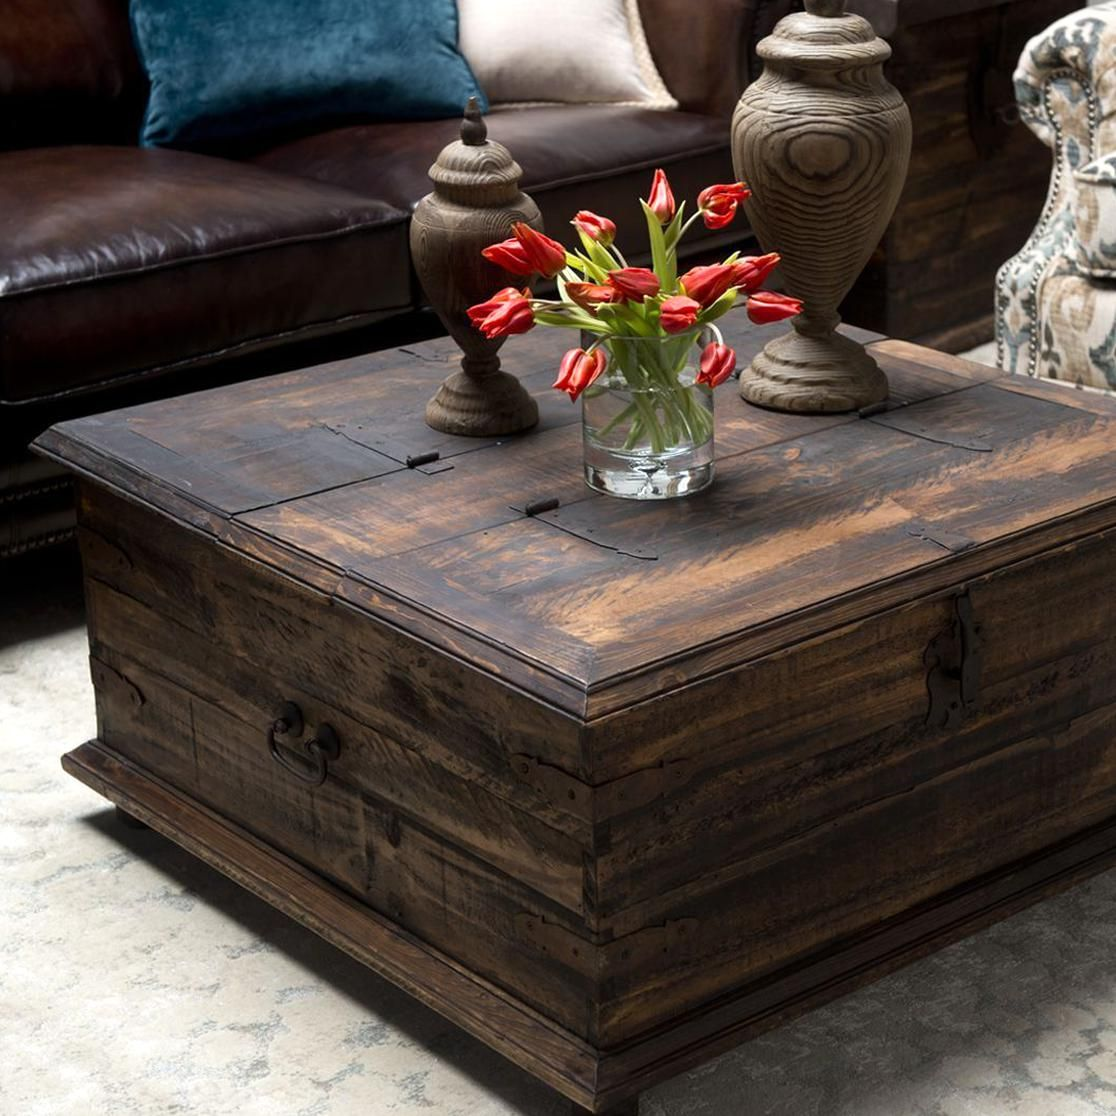 Rustic Coffee Tabletrunk Includes Hinged Lid For Handy Chest Coffee Table Rustic Coffee Table Sets Coffee Table Square [ 1116 x 1116 Pixel ]